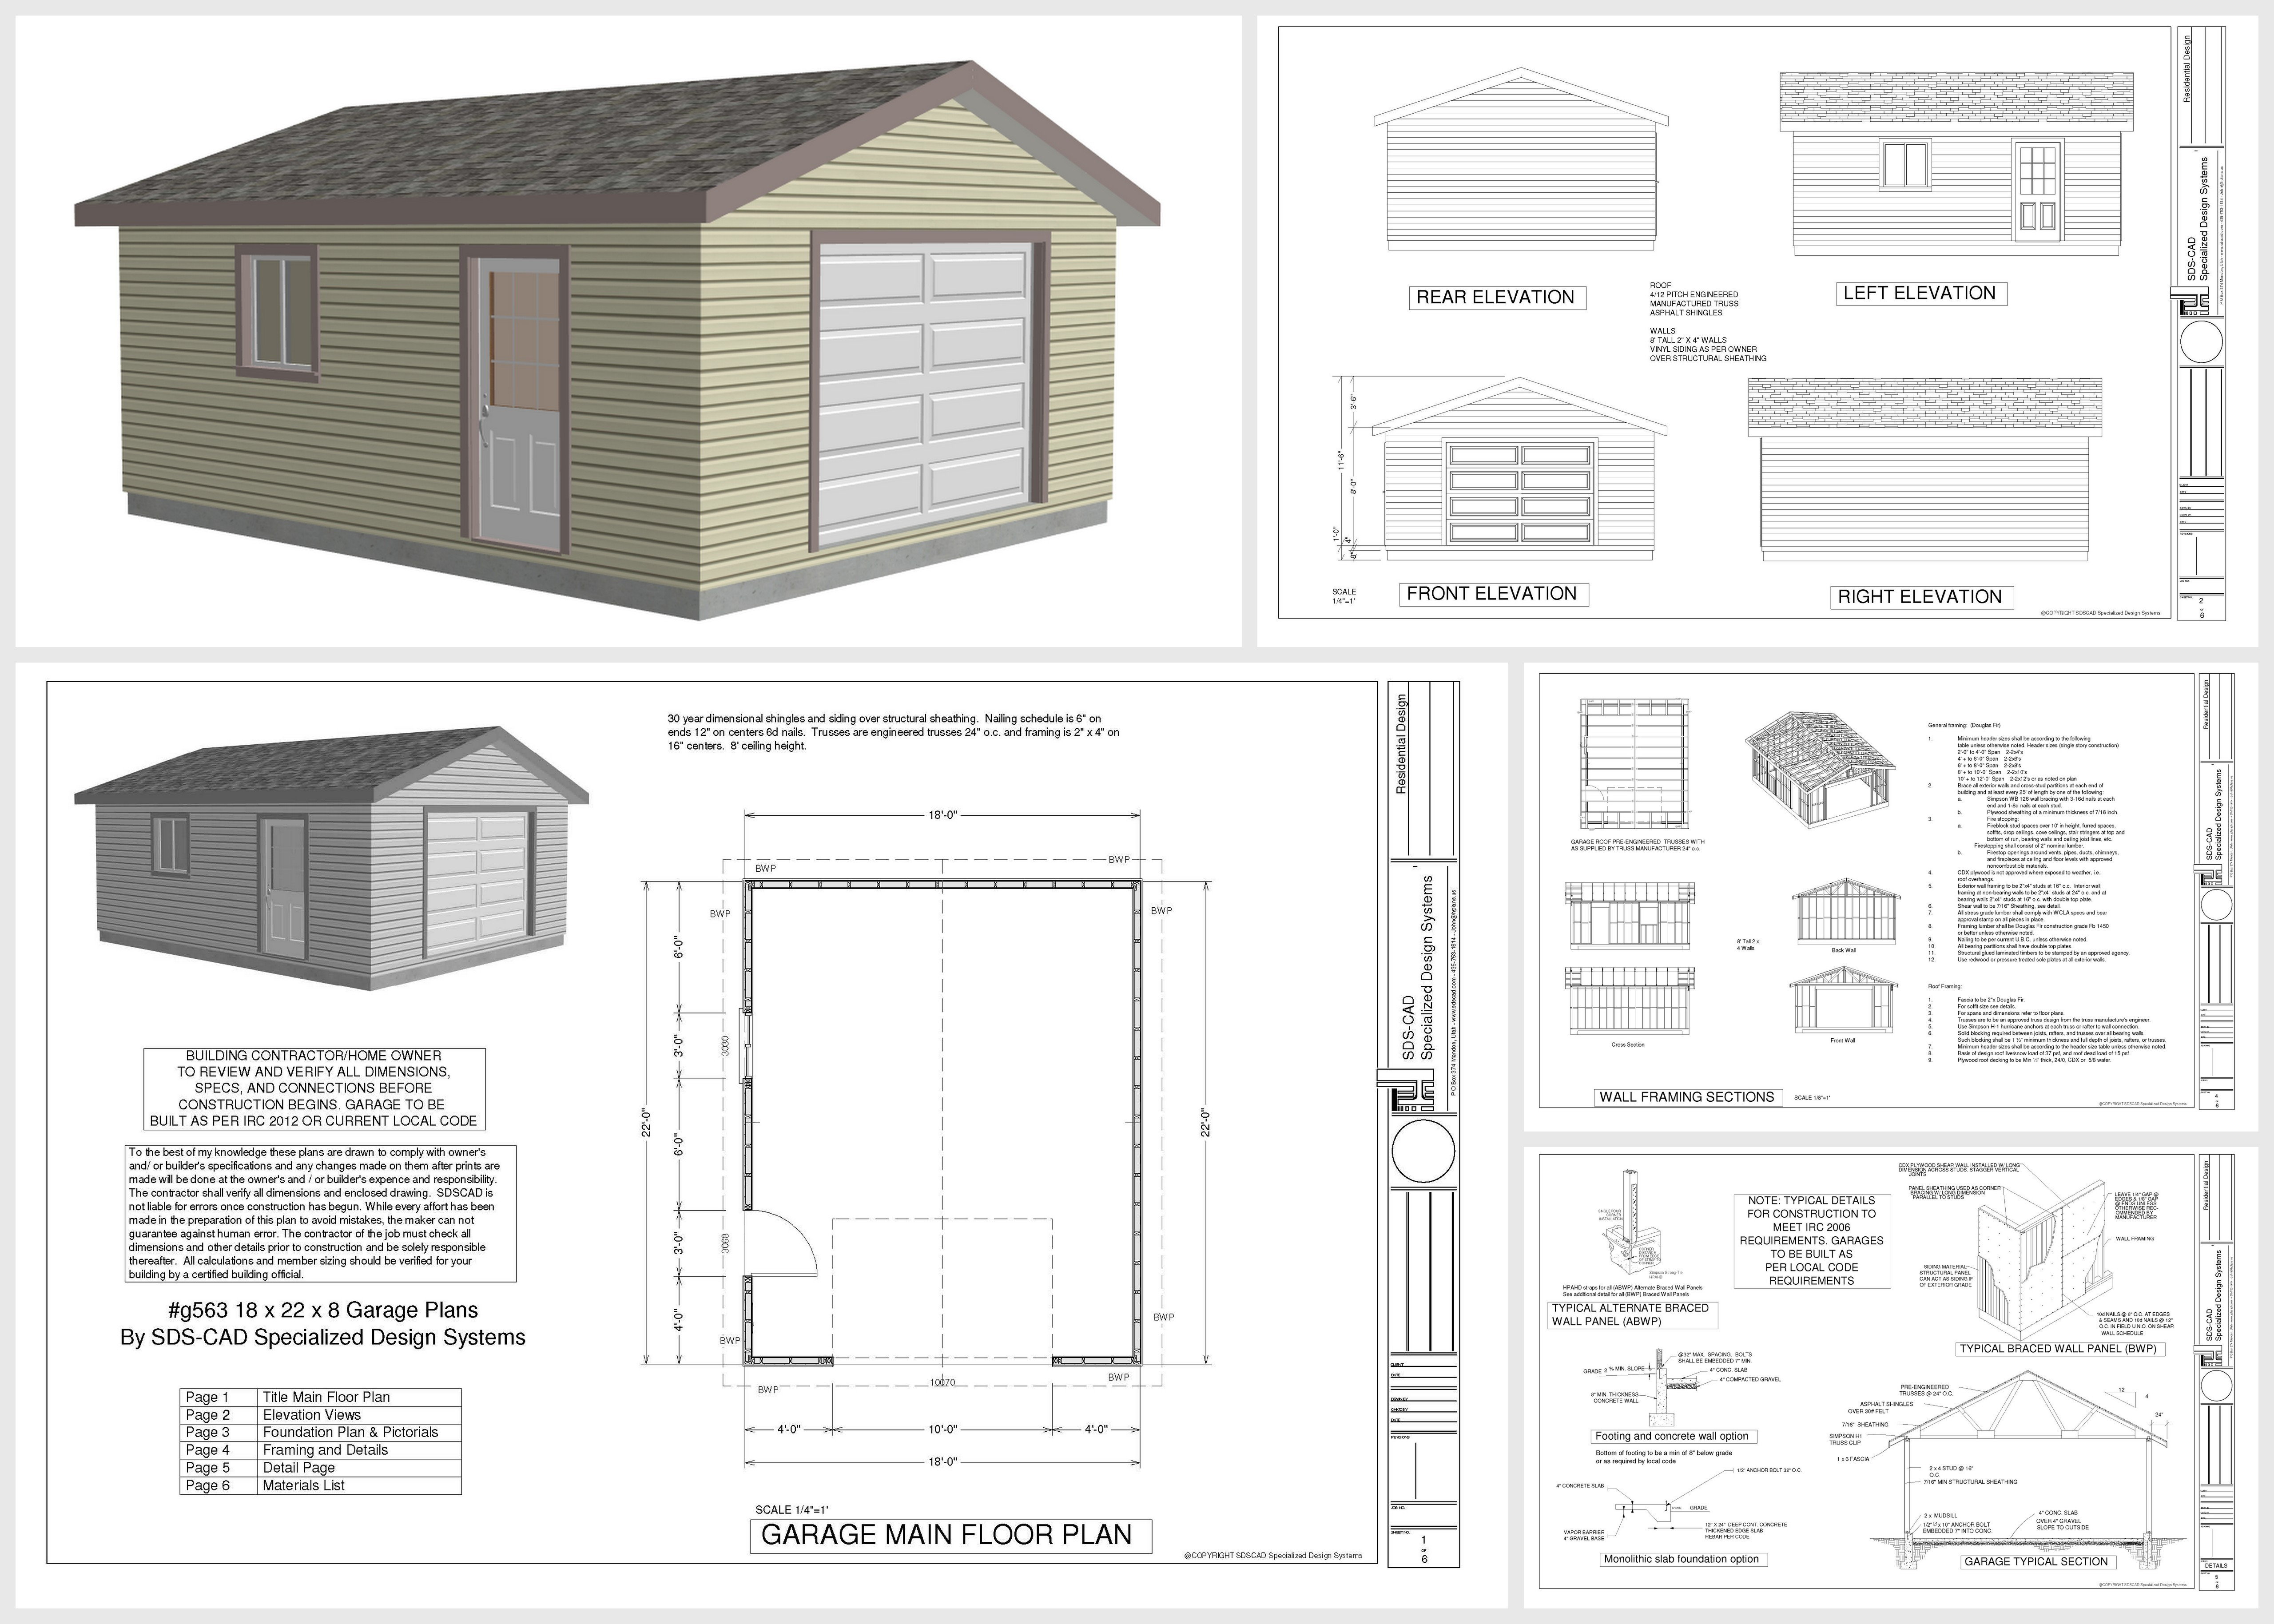 G563 18 x 22 x 8 garage plans in pdf and dwg sds plans for Garage plans free download